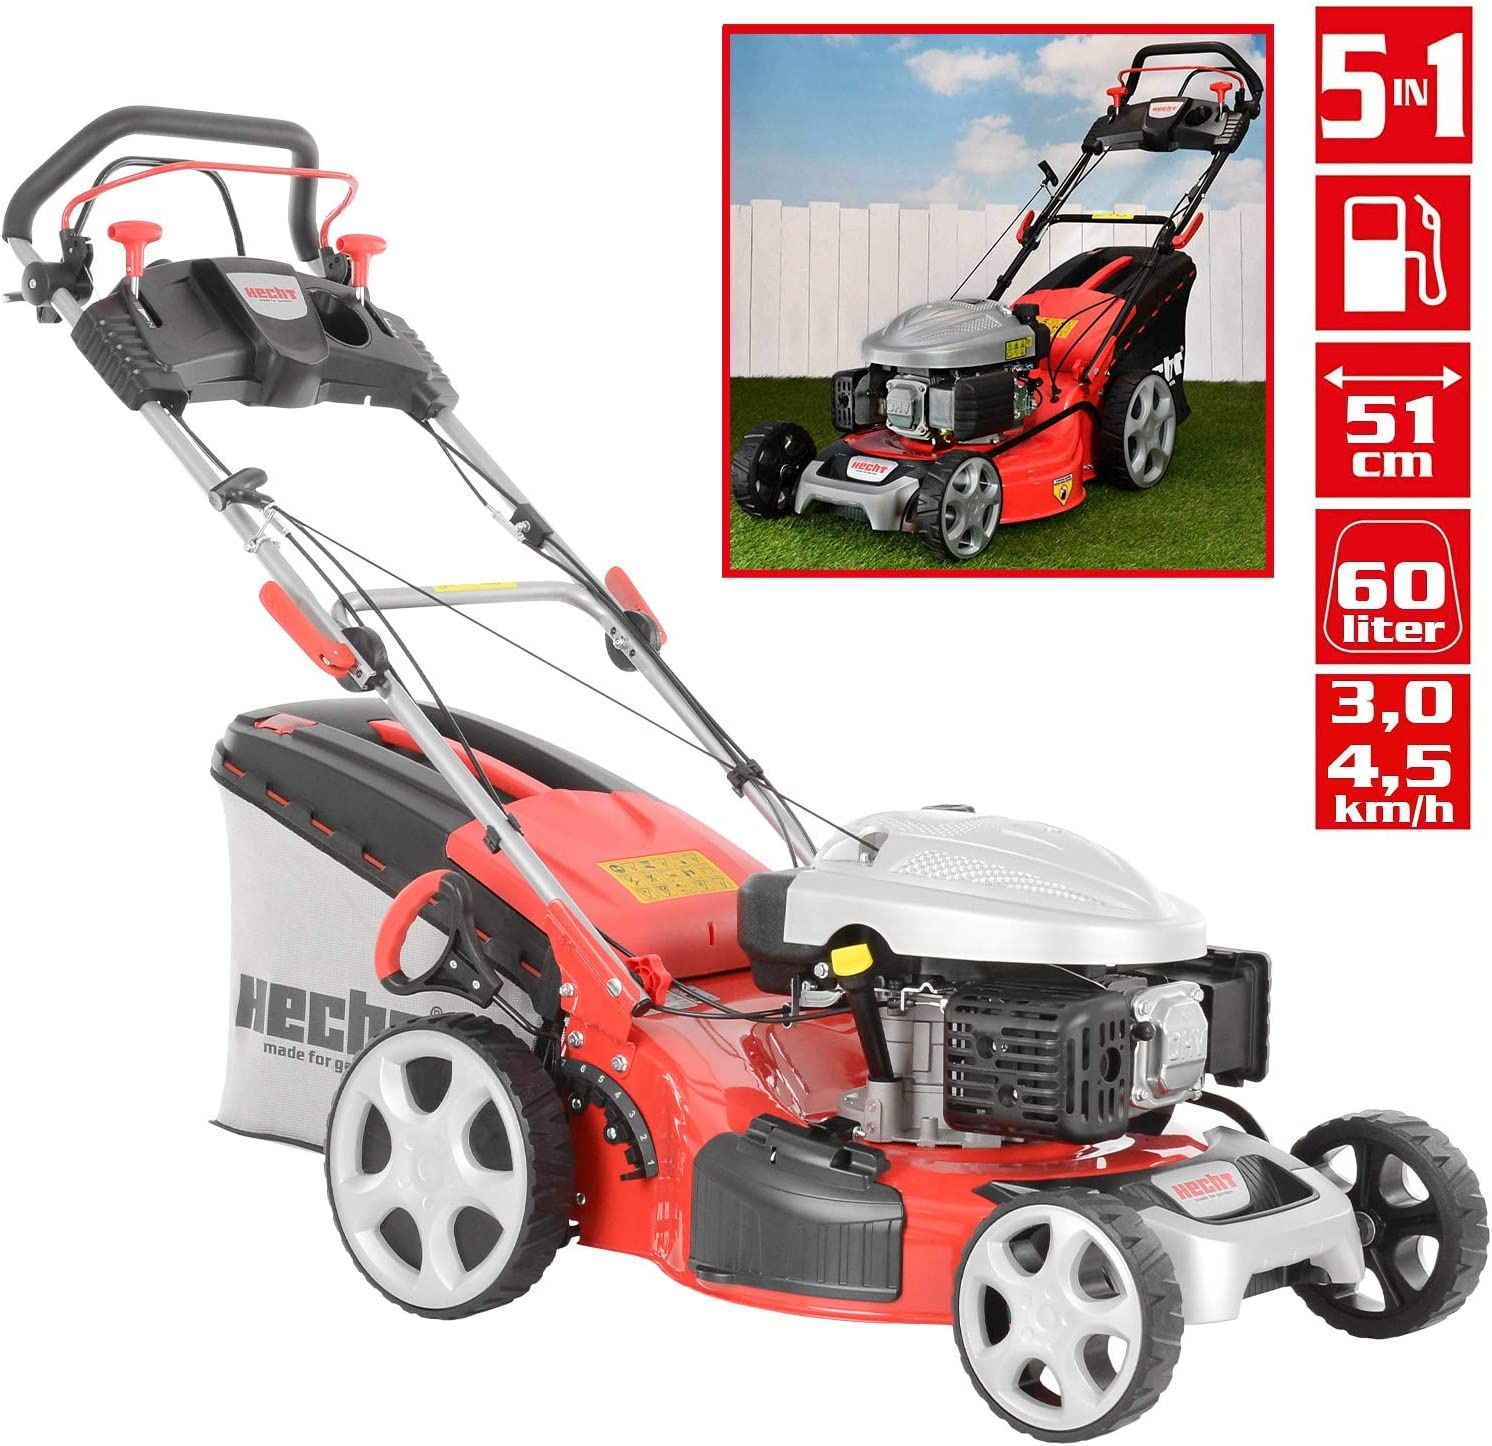 HECHT 5534 SX 5 in 1 Walk behind lawn mower Gasolina - Cortacésped ...